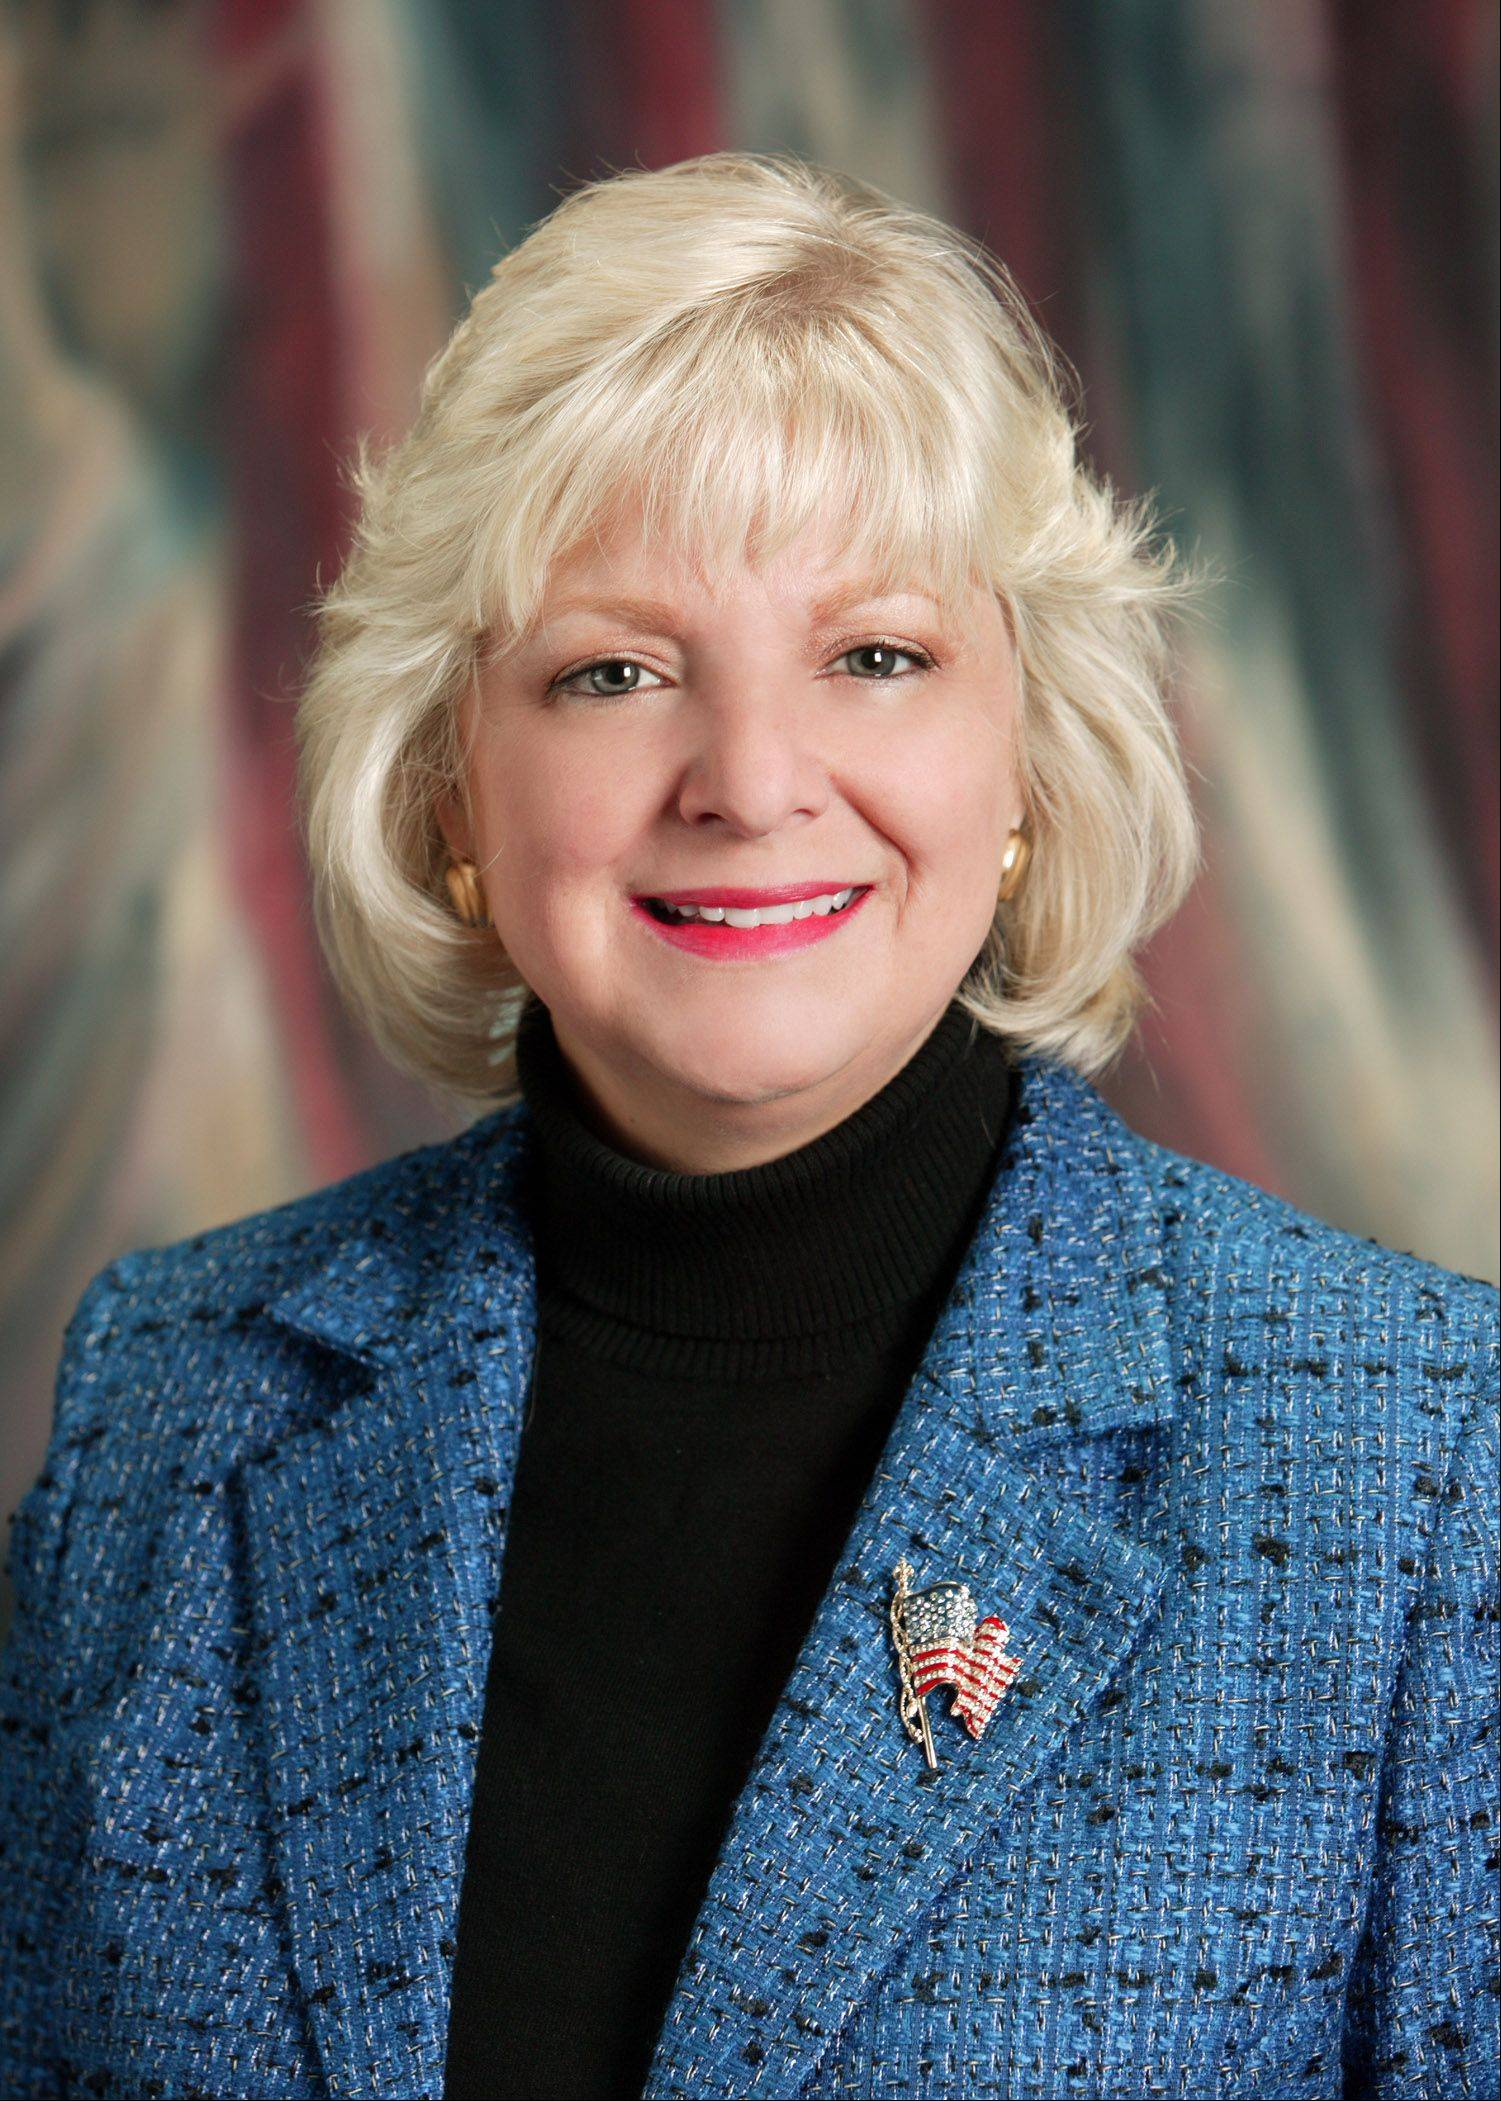 Suzanne Simpson makes $81,700 as the Warren Township supervisor.